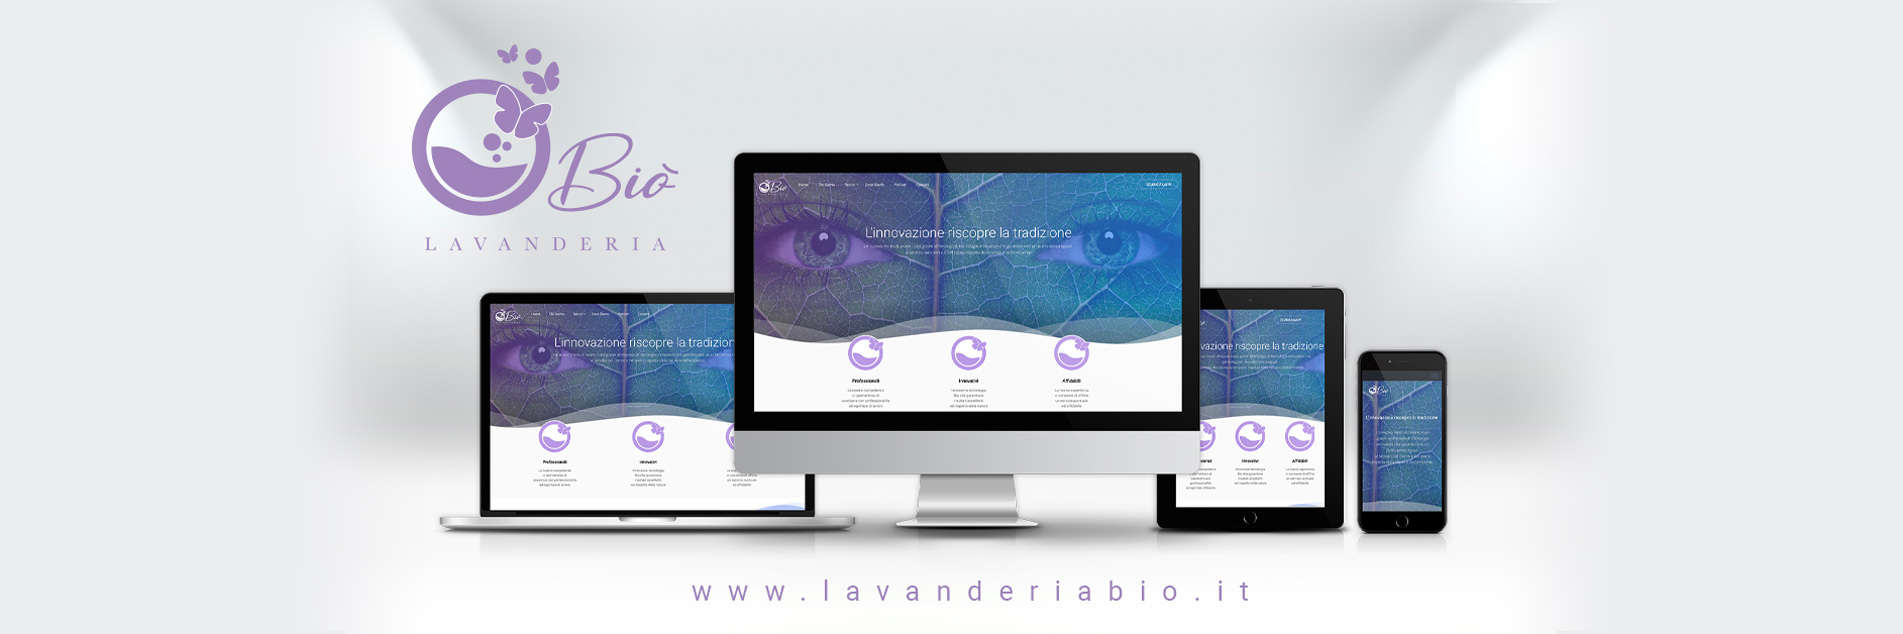 Lavanderia Biò new website is online | Bio-Laundry Center